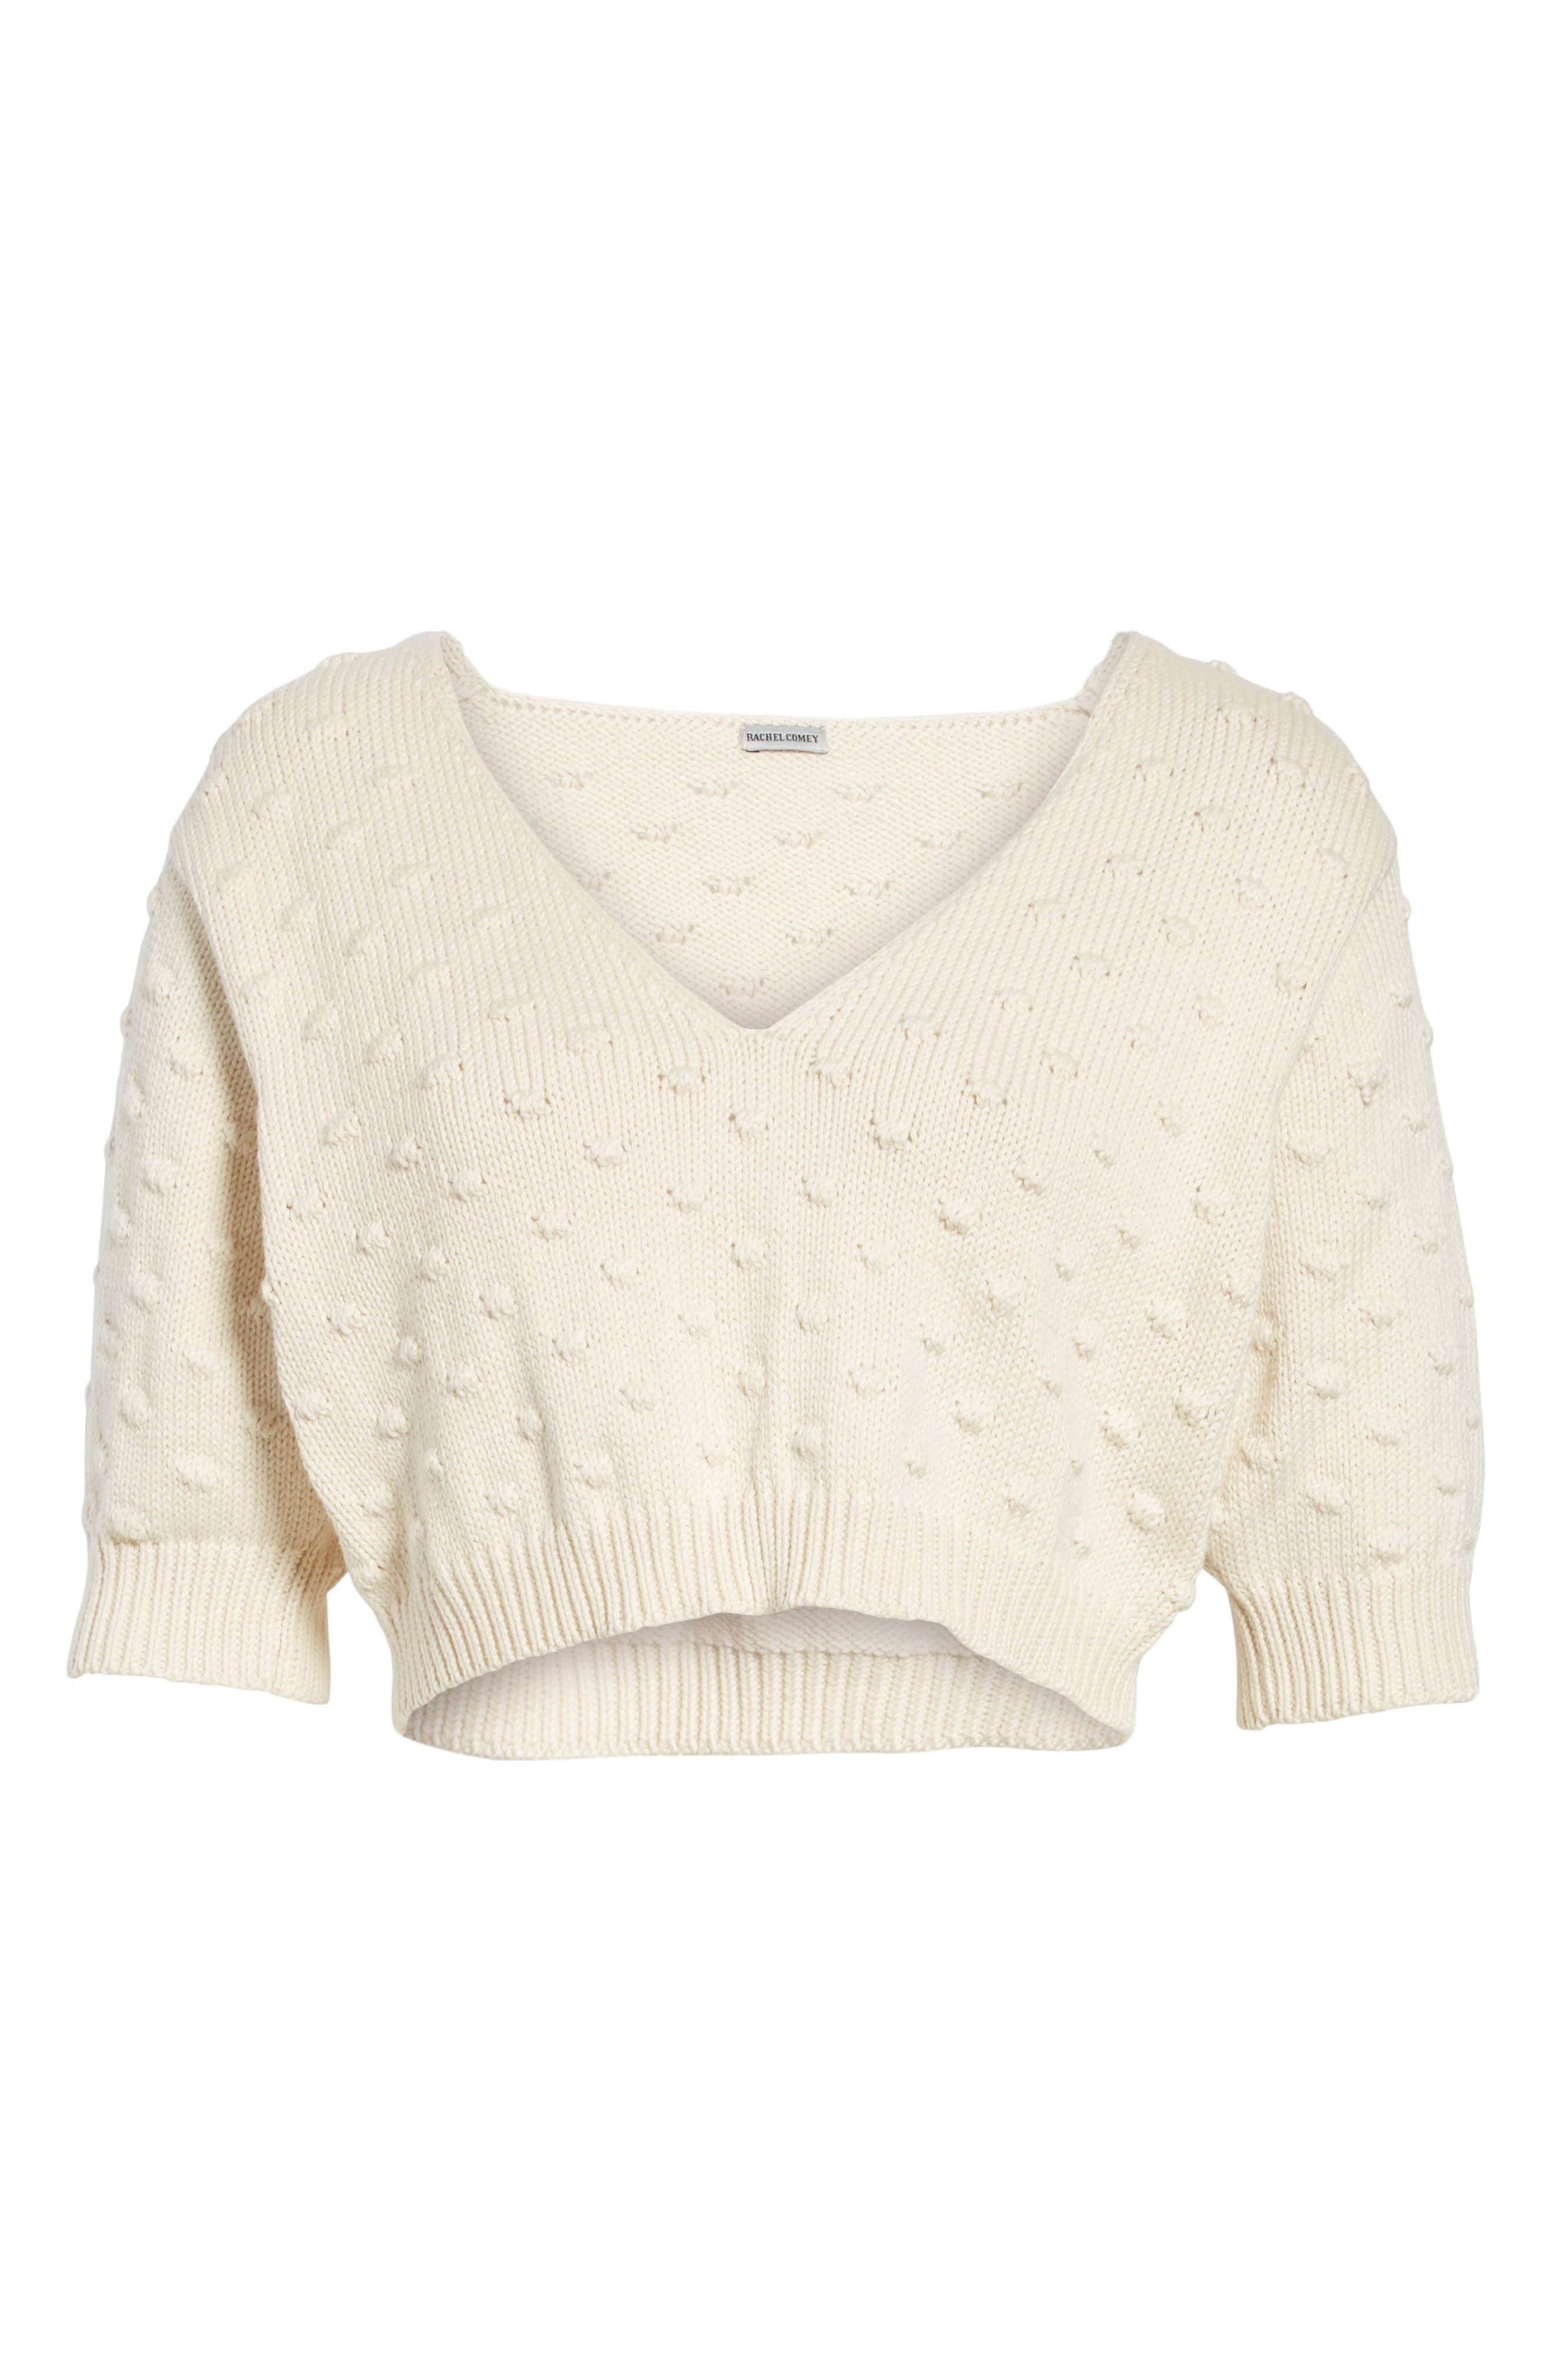 Ode Garbanzo Knit Crop Sweater,                             Alternate thumbnail 6, color,                             Ivory